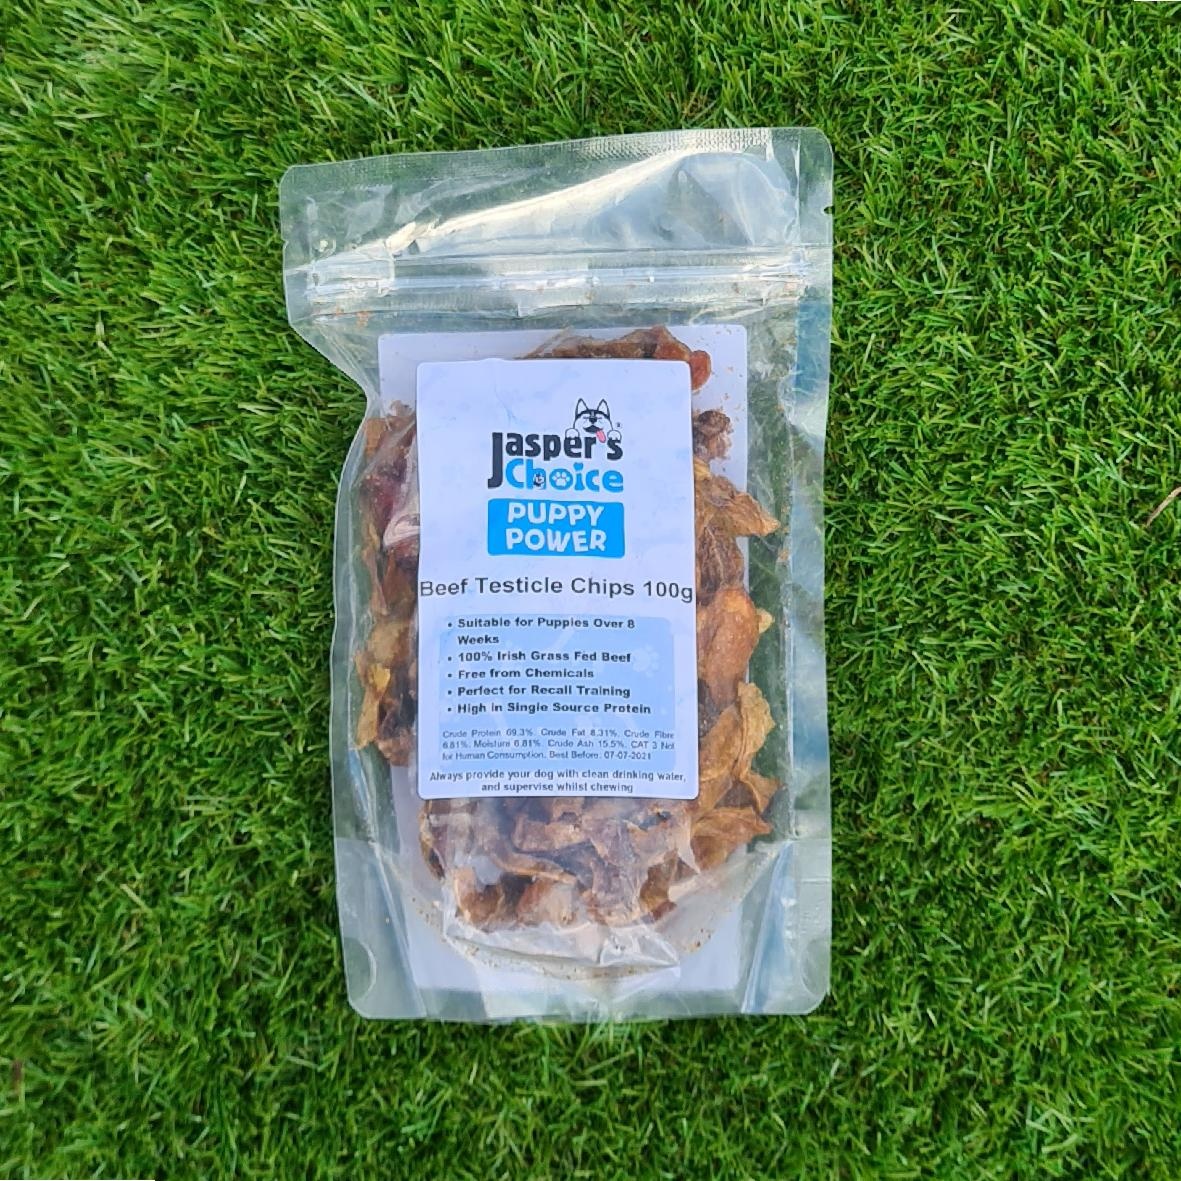 Jaspers Choice PUPPY POWER Beef Testicle Chips 100gm